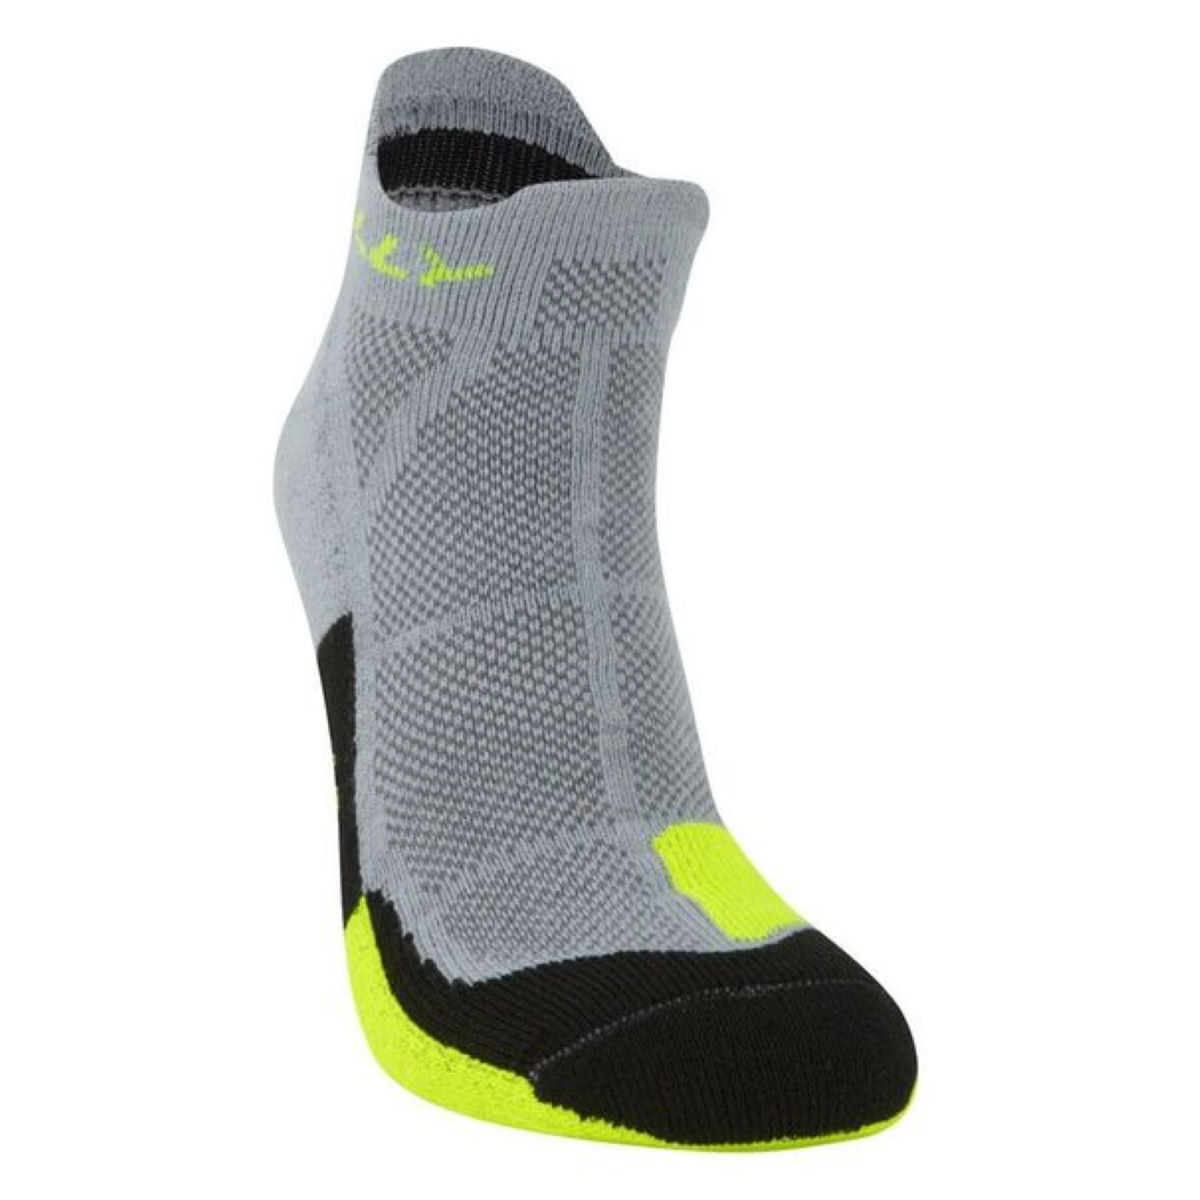 Socquettes Hilly Cushion - XL Grey/FluoYellow/Blk  Chaussettes